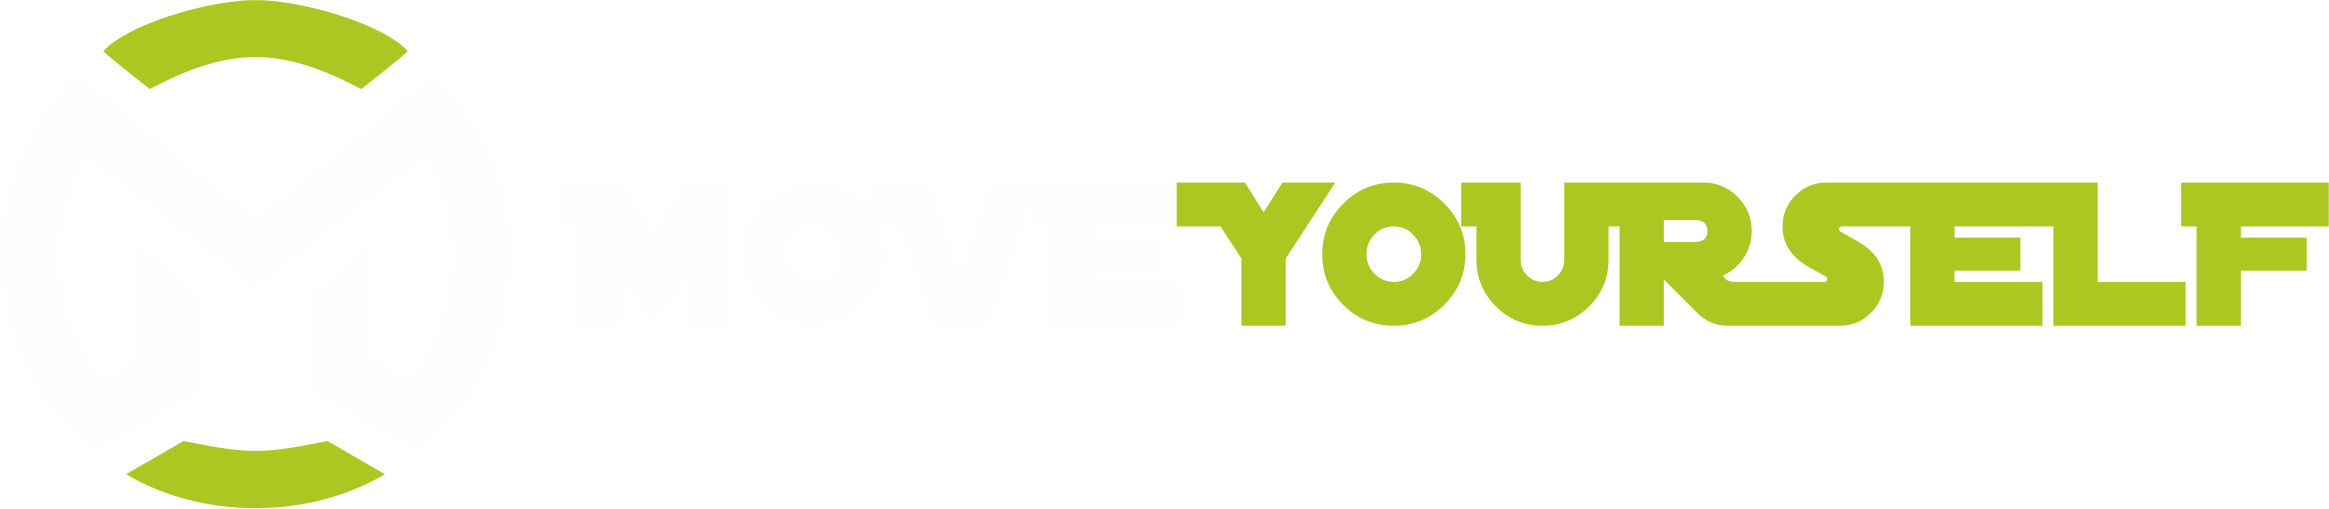 Moveyourself_logo_white